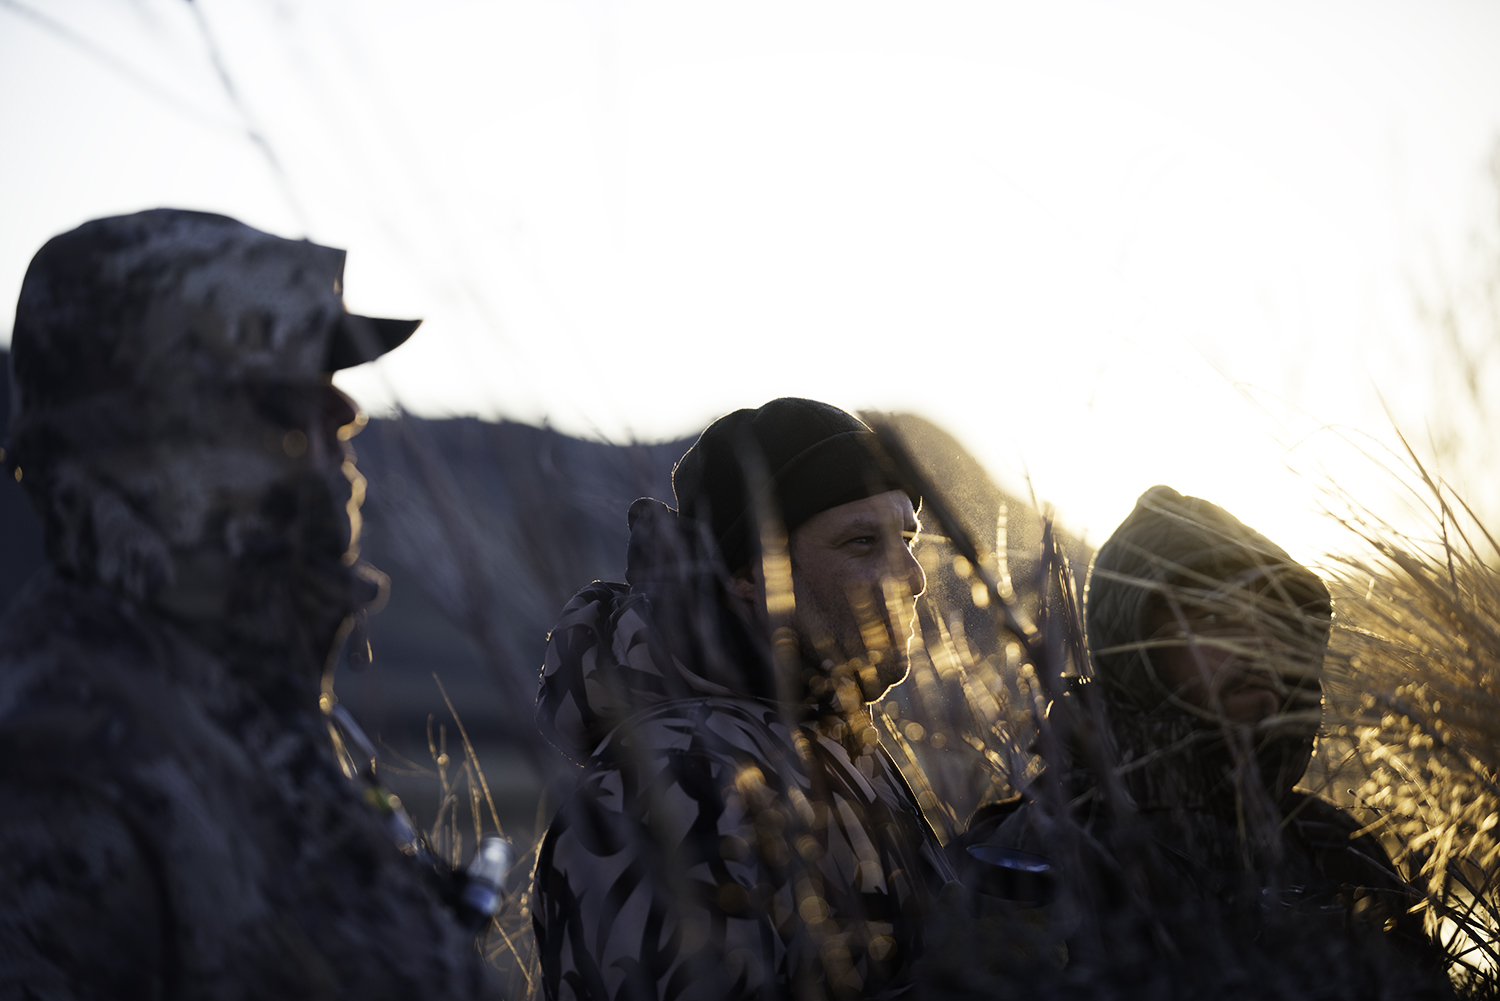 Sunrise & Coffee in the blind.